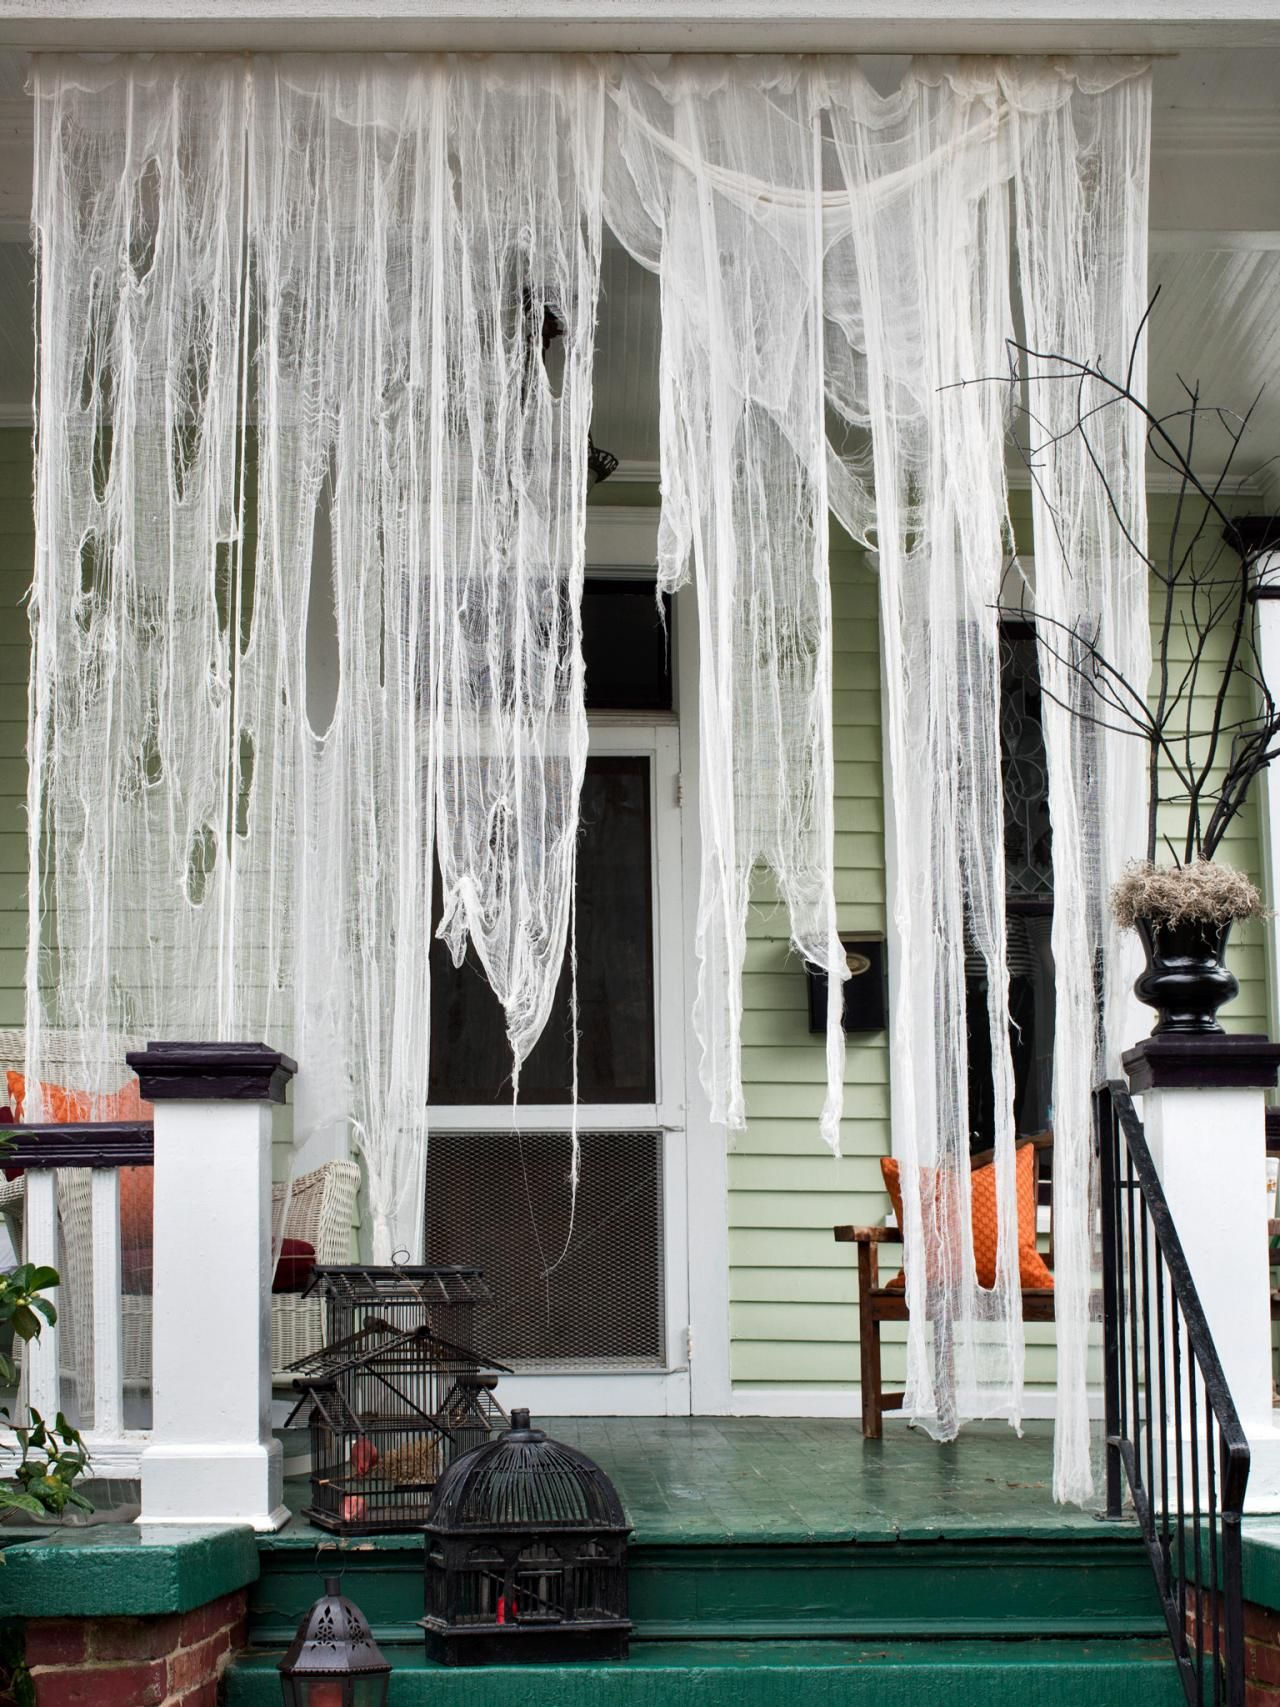 60 diy halloween decorations decorating ideas - Halloween Ideas Decorations